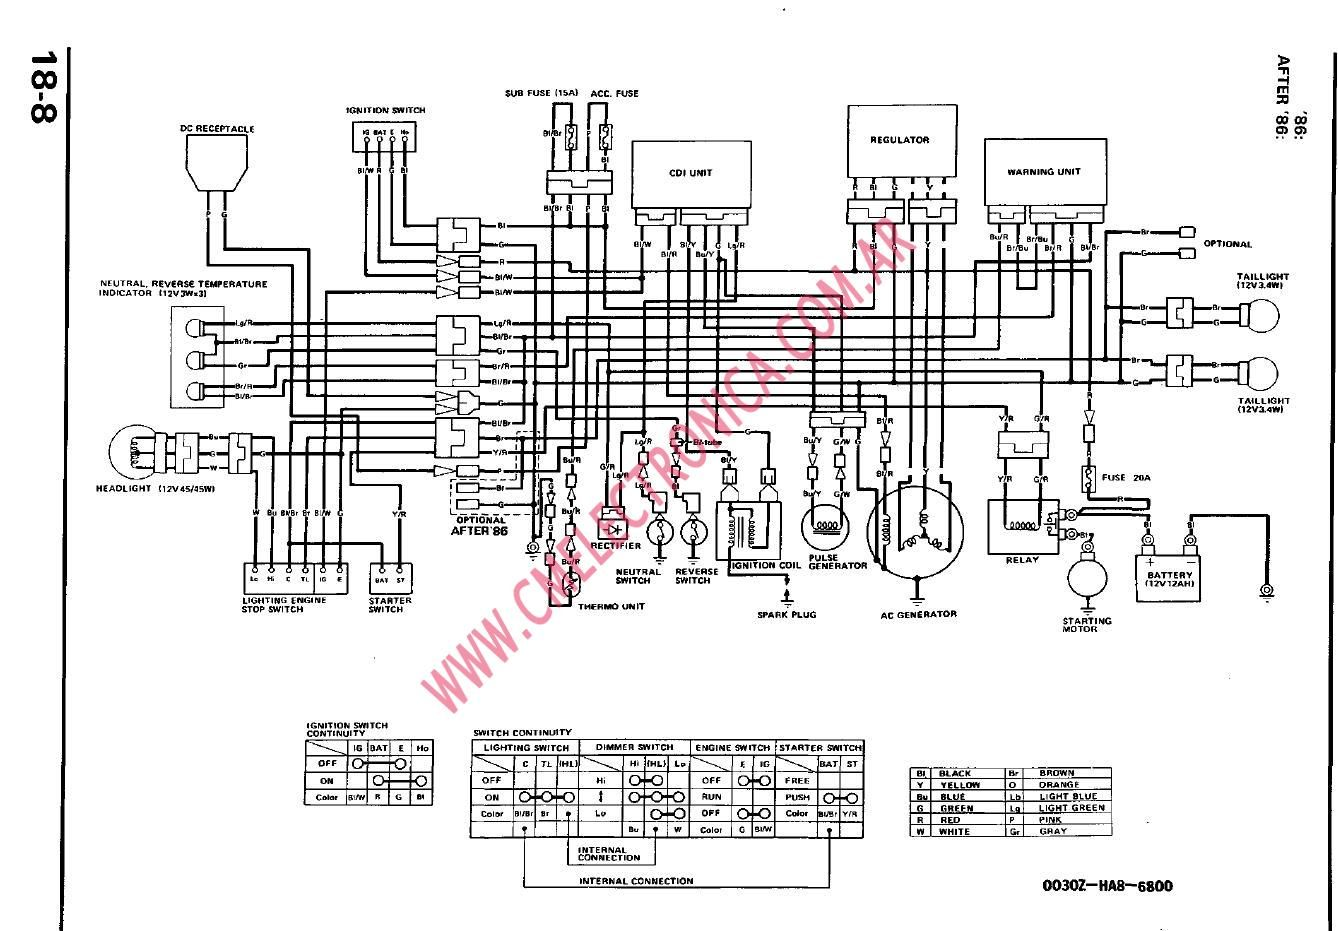 1998 trx 250 fourtrax recon wiring | 1993 Honda 300Ex Wiring Diagram  furthermore Honda Big Red Wiring ... | Diagram, Trx, HondaPinterest